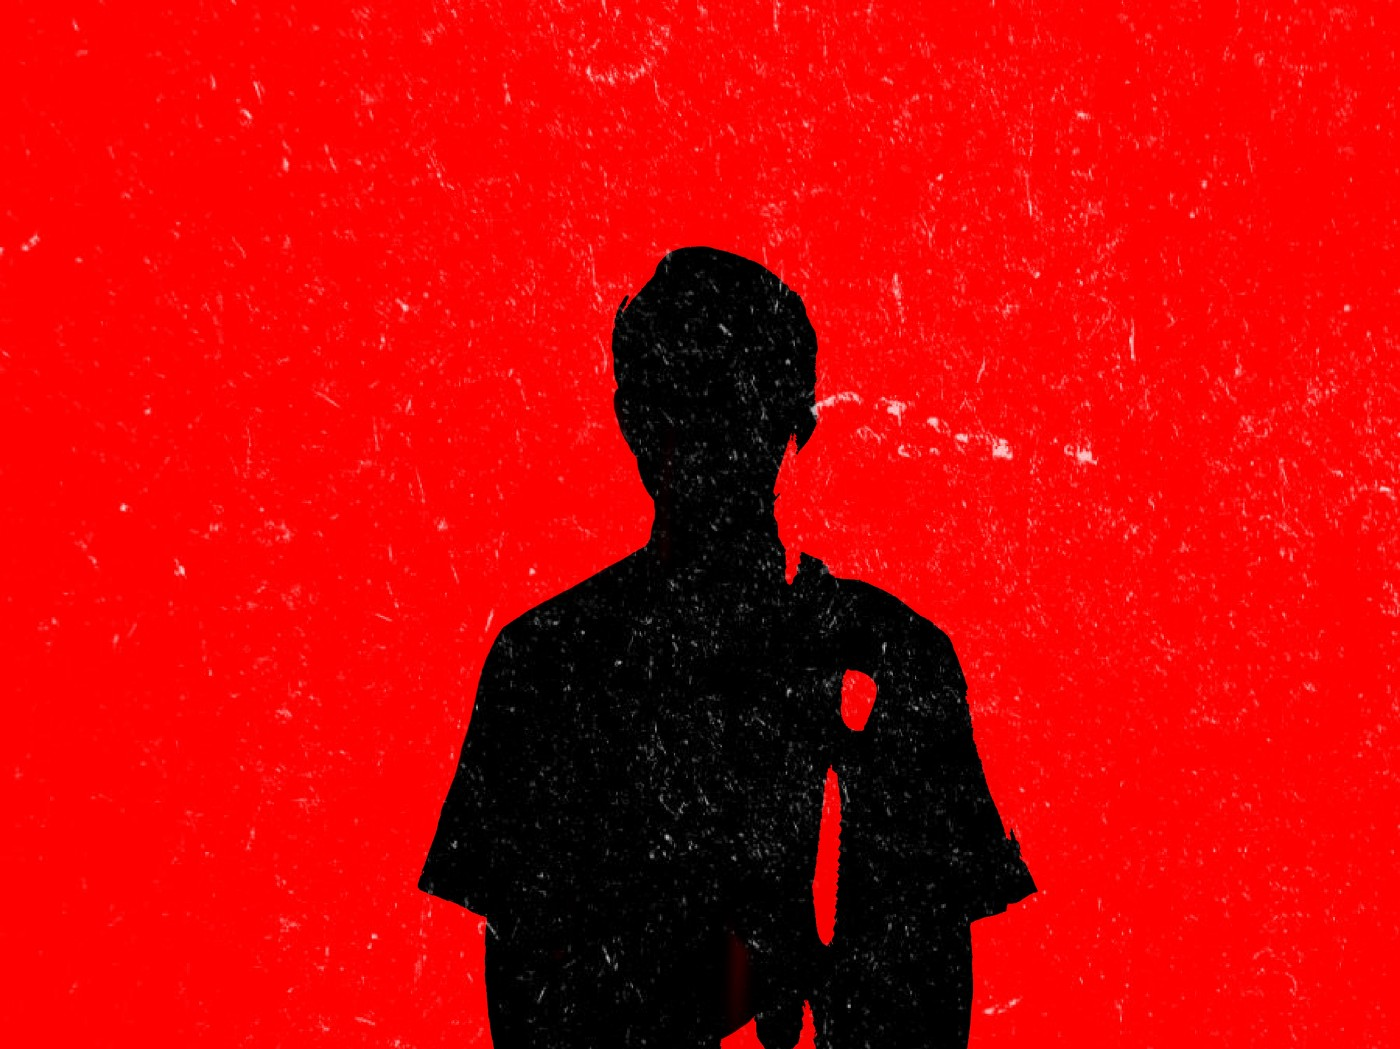 An illustration of a black silhouette of a young man against a bright red background.